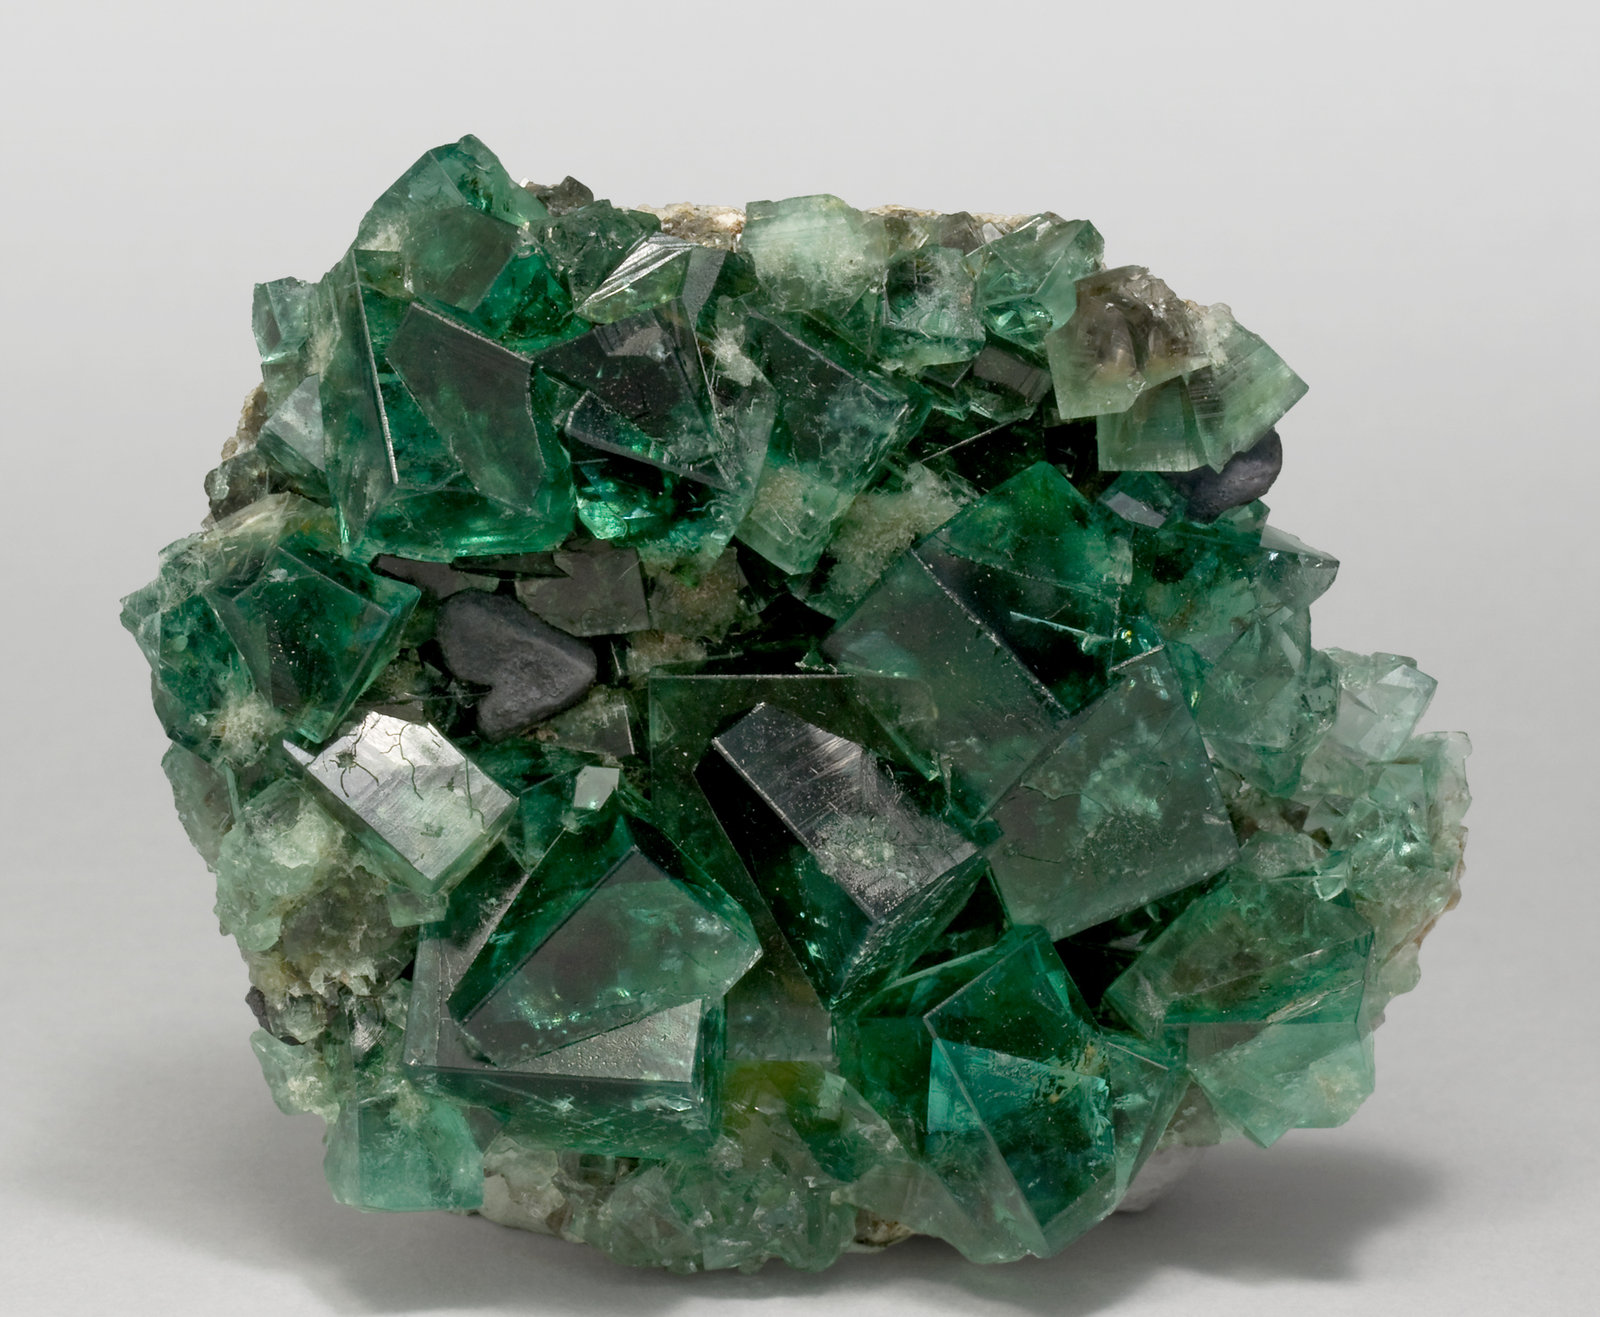 specimens/s_imagesT1/Fluorite-MX68T1f.jpg